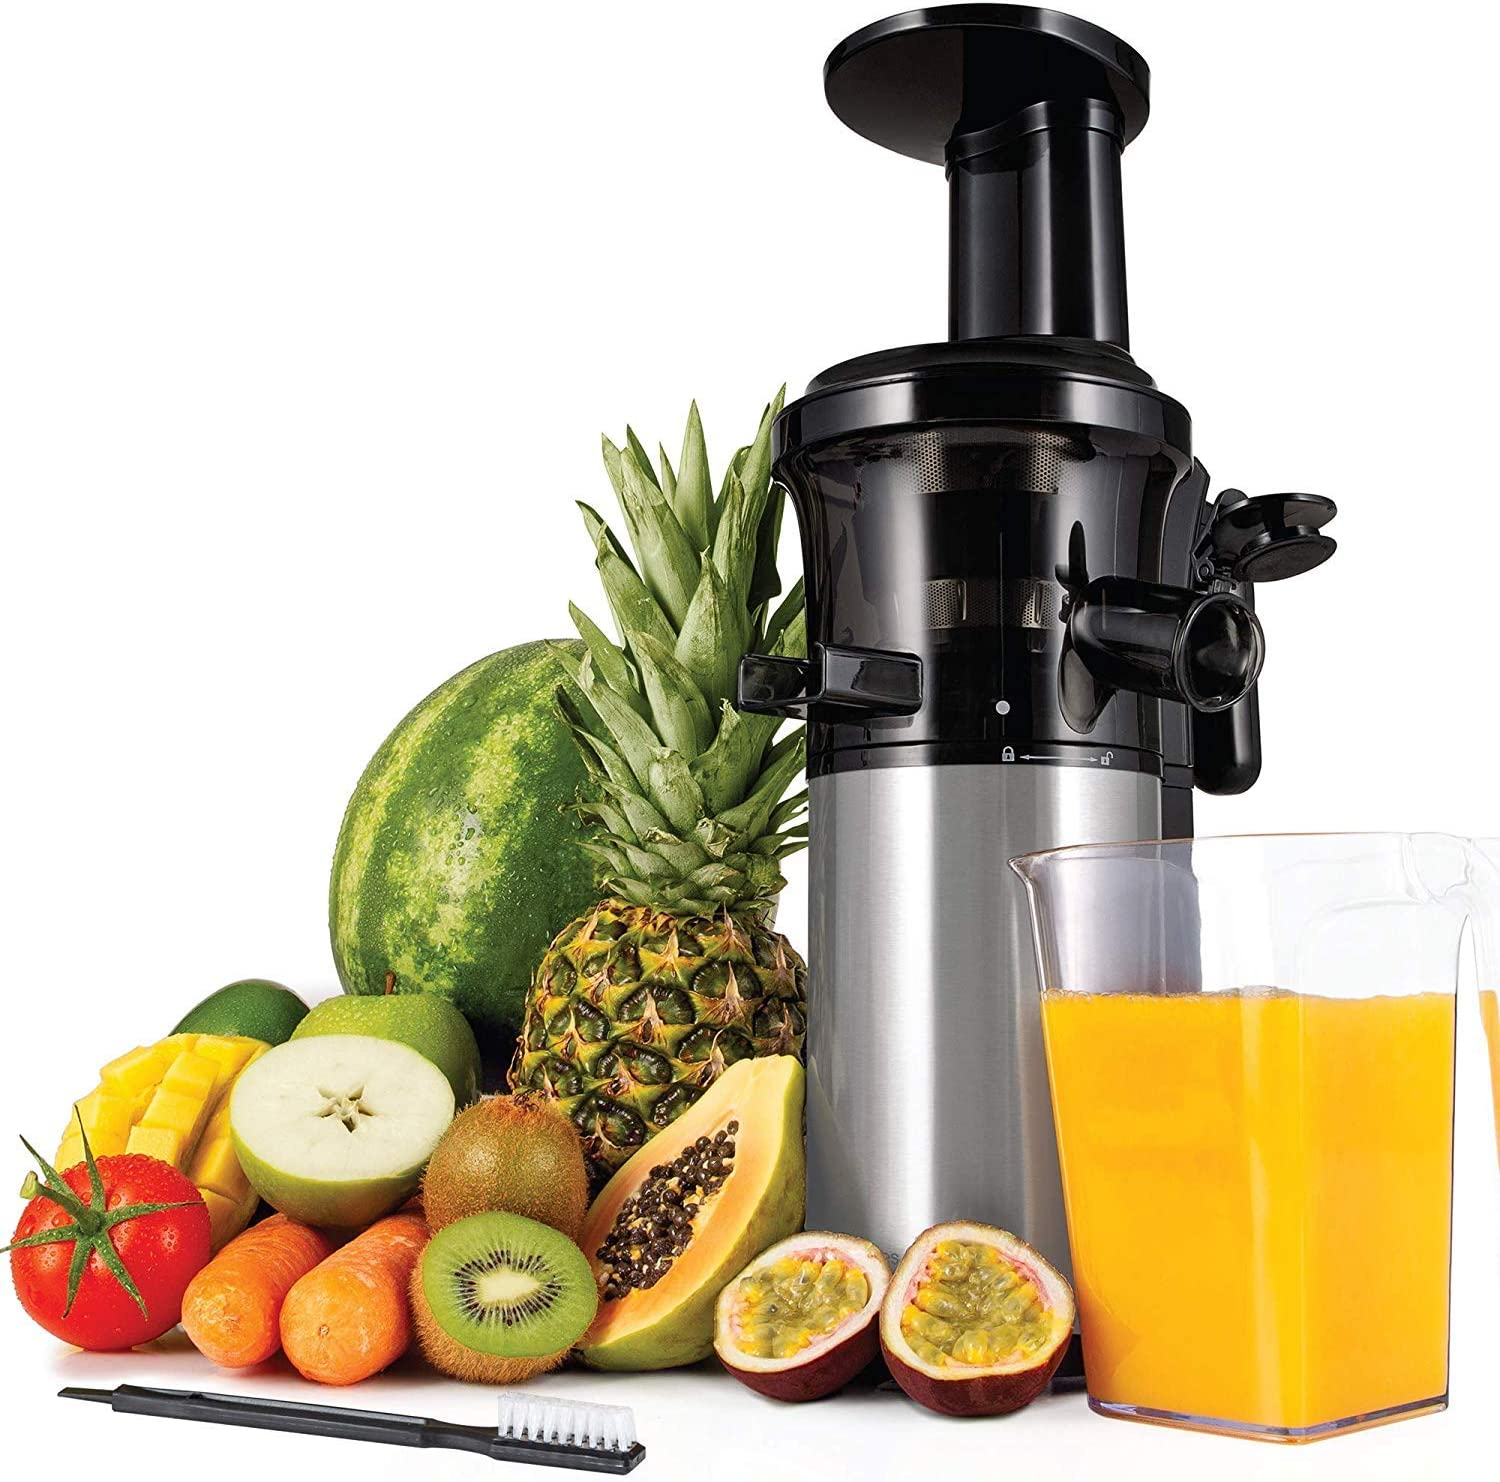 Andrew James Masticating Slow Juicer Machine | Juices Various Fruit & Veg | Oranges Apples Carrots | Makes Nutritious Fresh Juice with Minimum Waste |